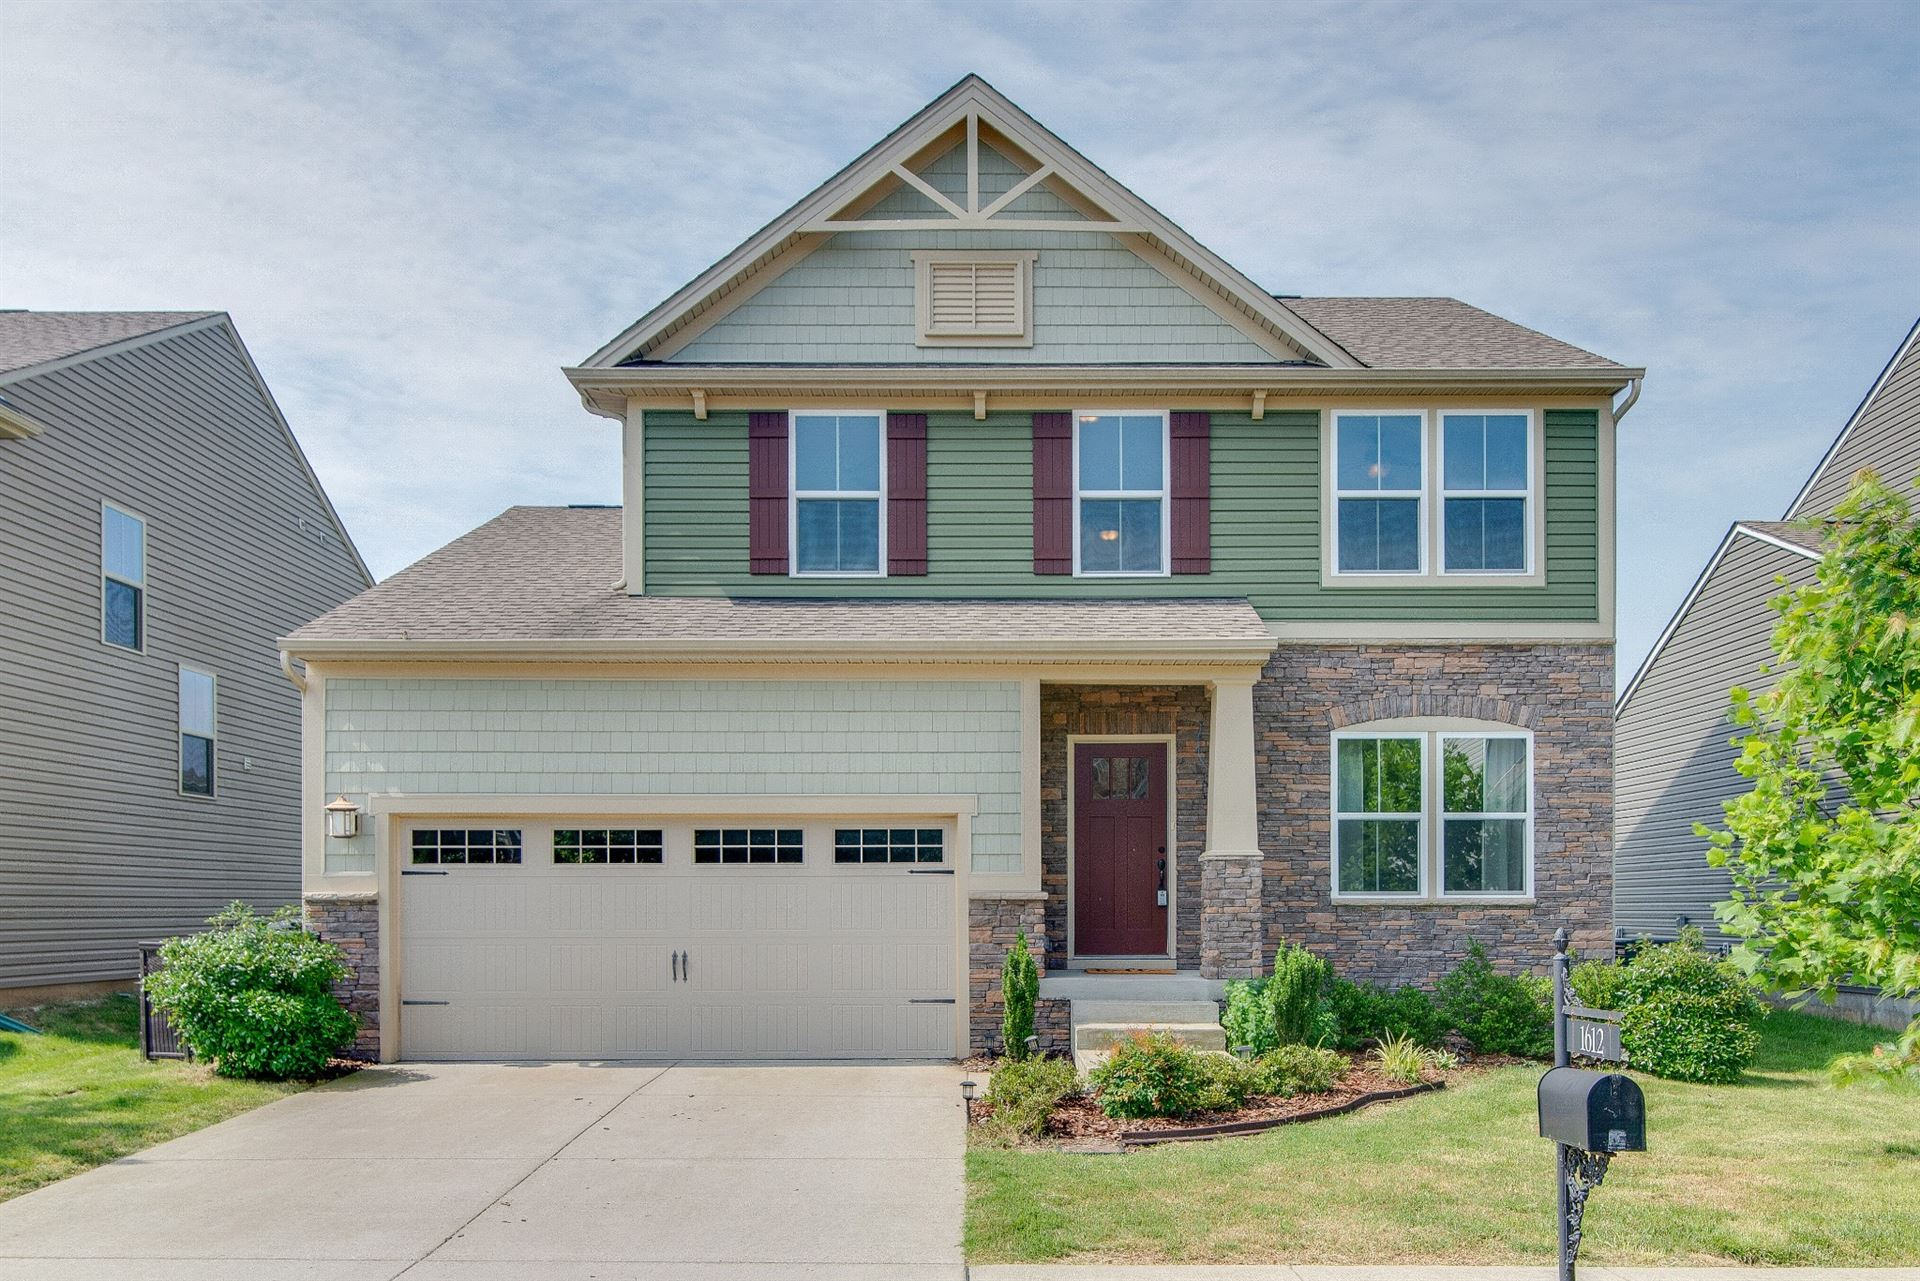 Photo of 1612 Brockton Ln, Nashville, TN 37221 (MLS # 2156666)